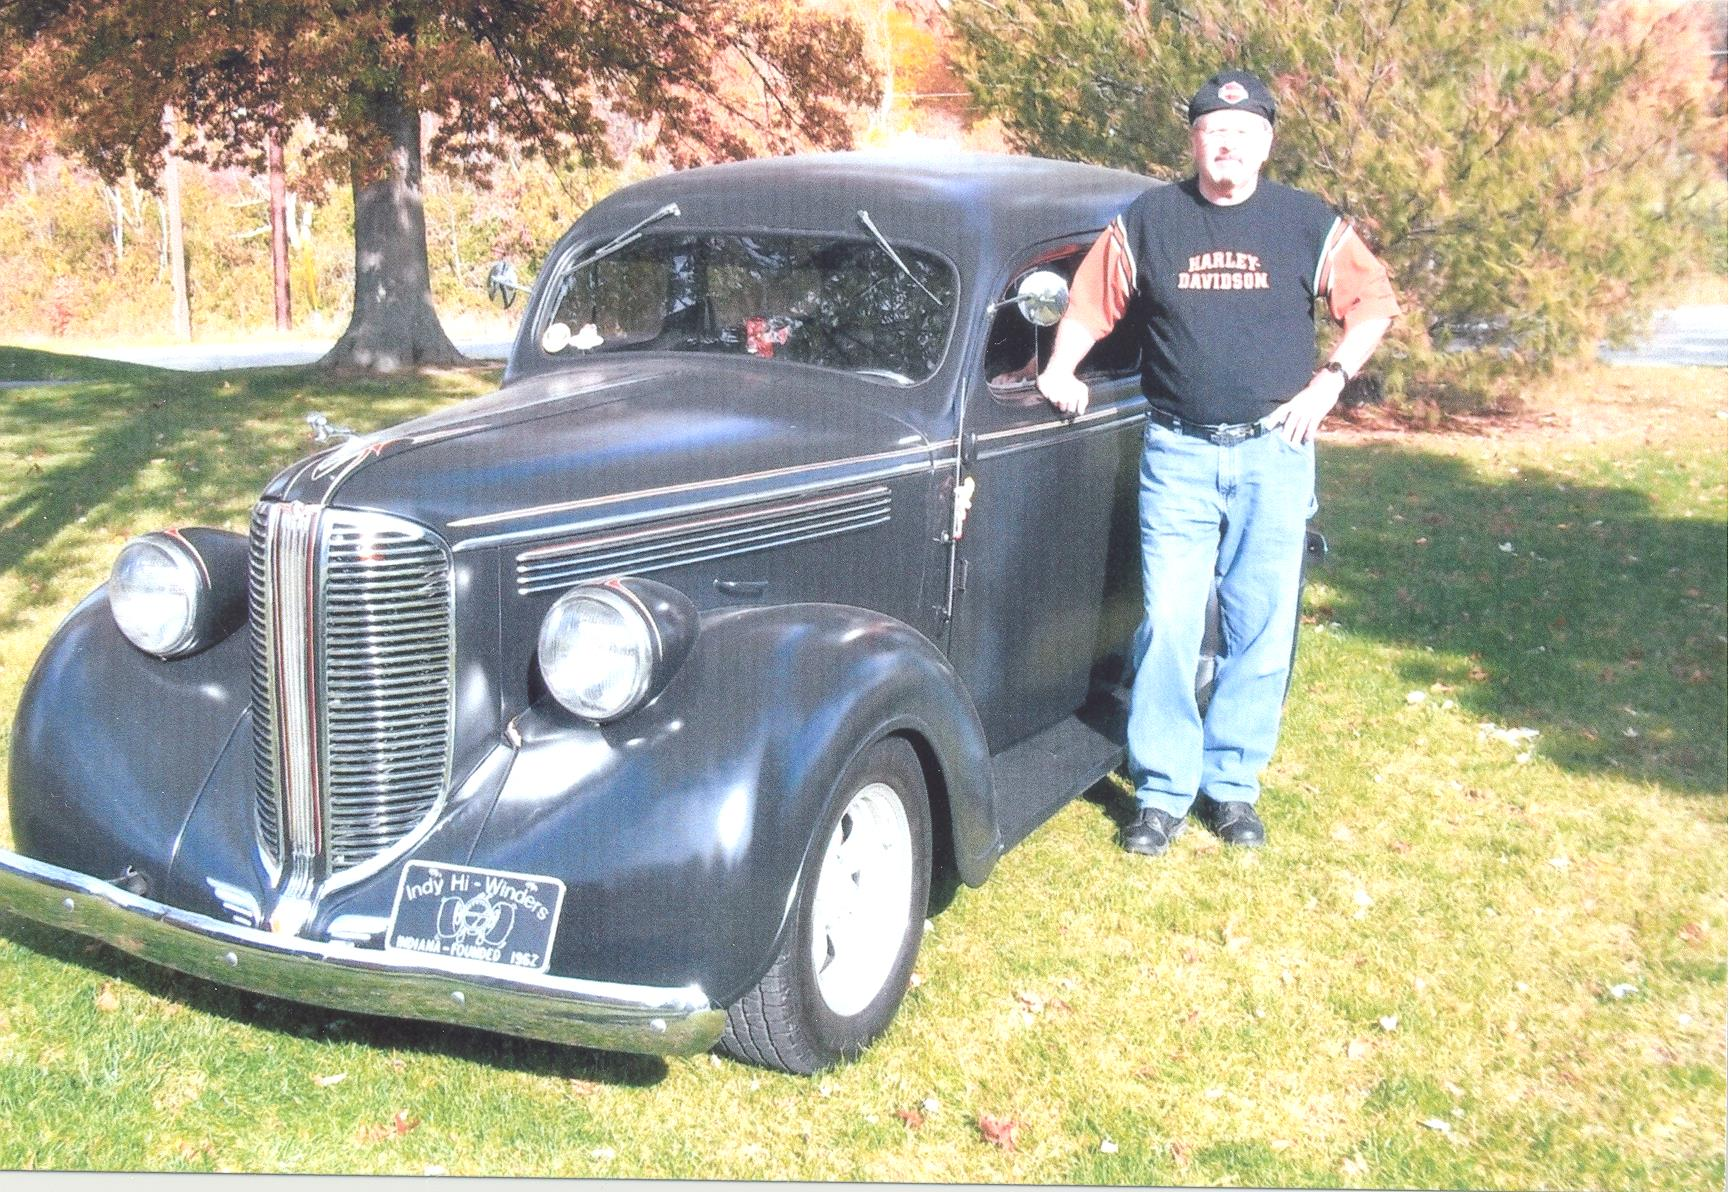 1938-Dodge-Sedan-Steve-Belich 001